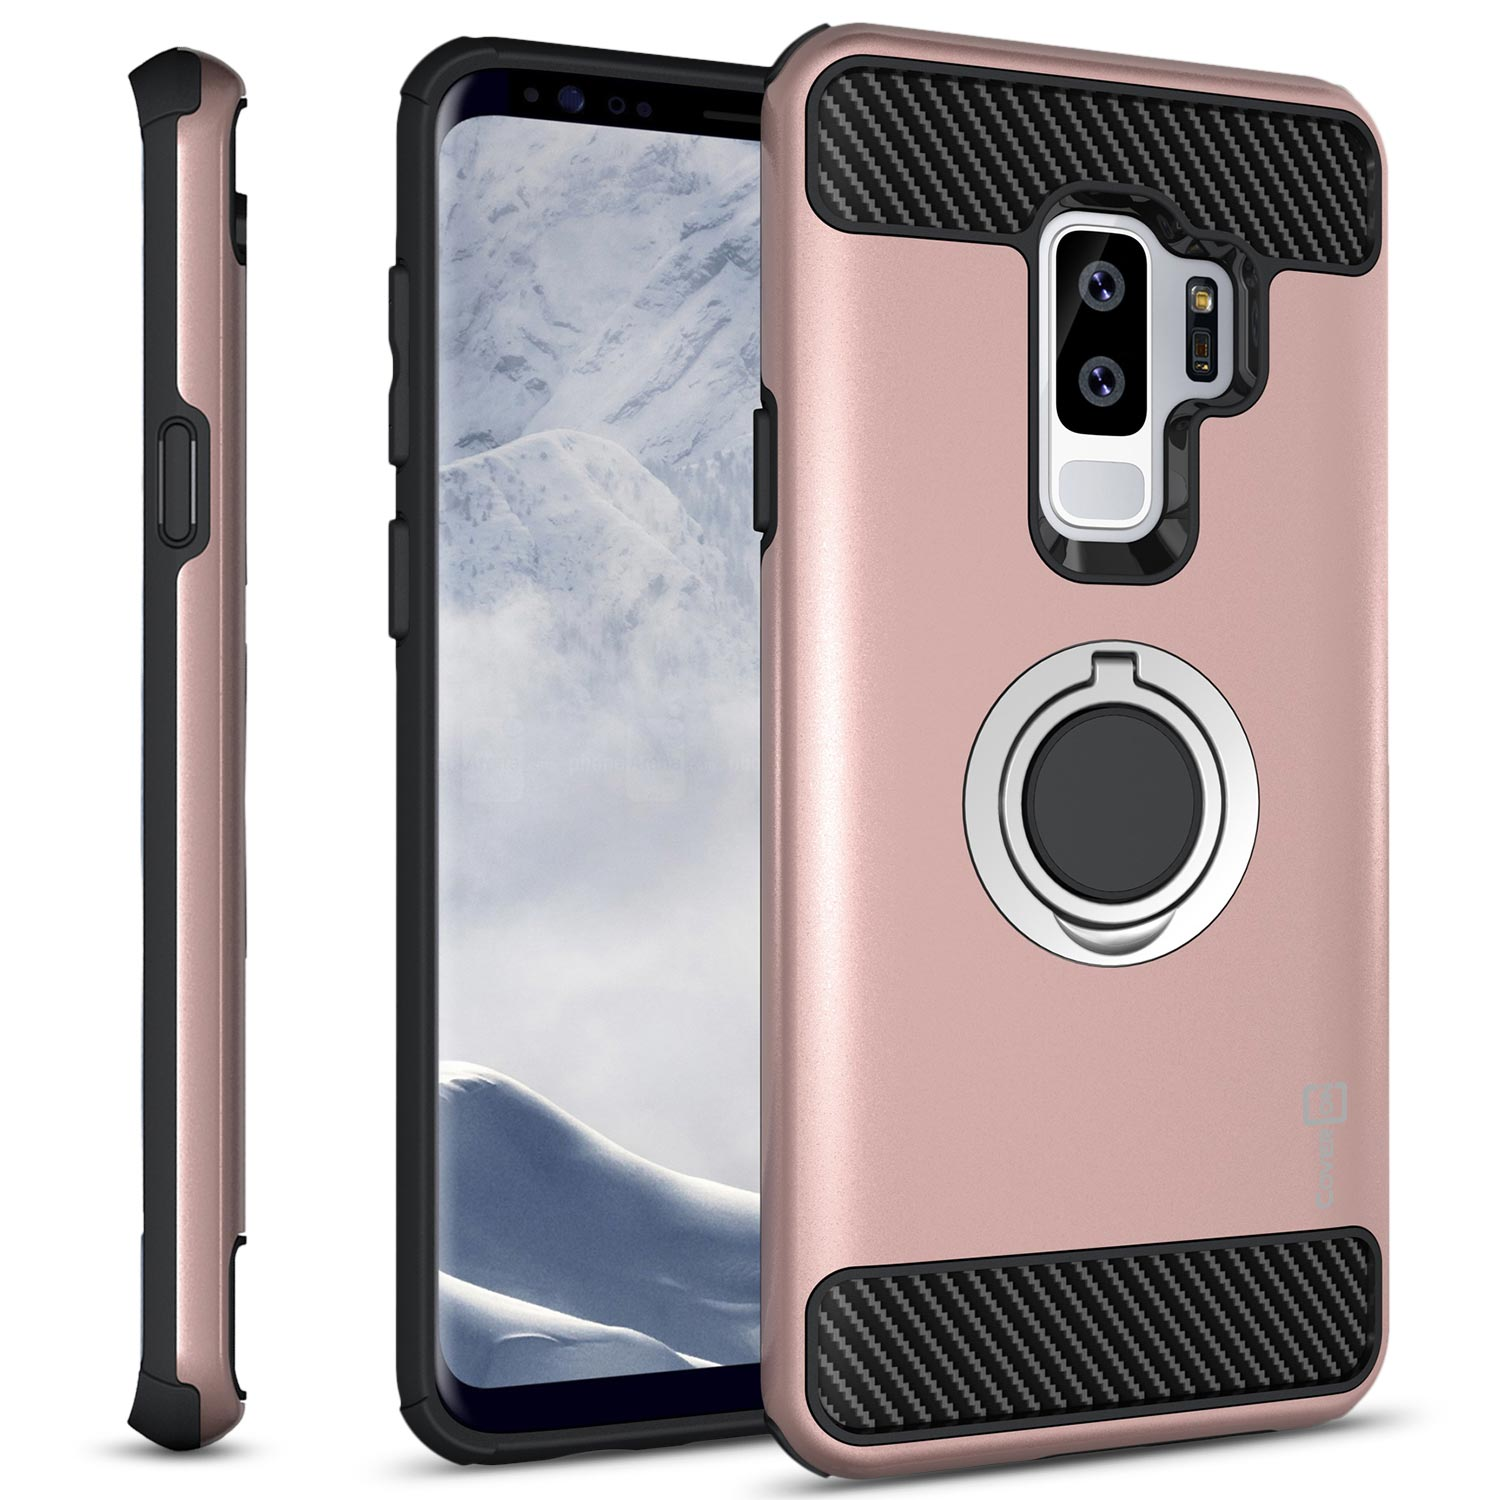 CoverON Samsung Galaxy S9 Plus Case with Ring Holder, RingCase Series Hybrid Protective Dua Layer Phone Cover